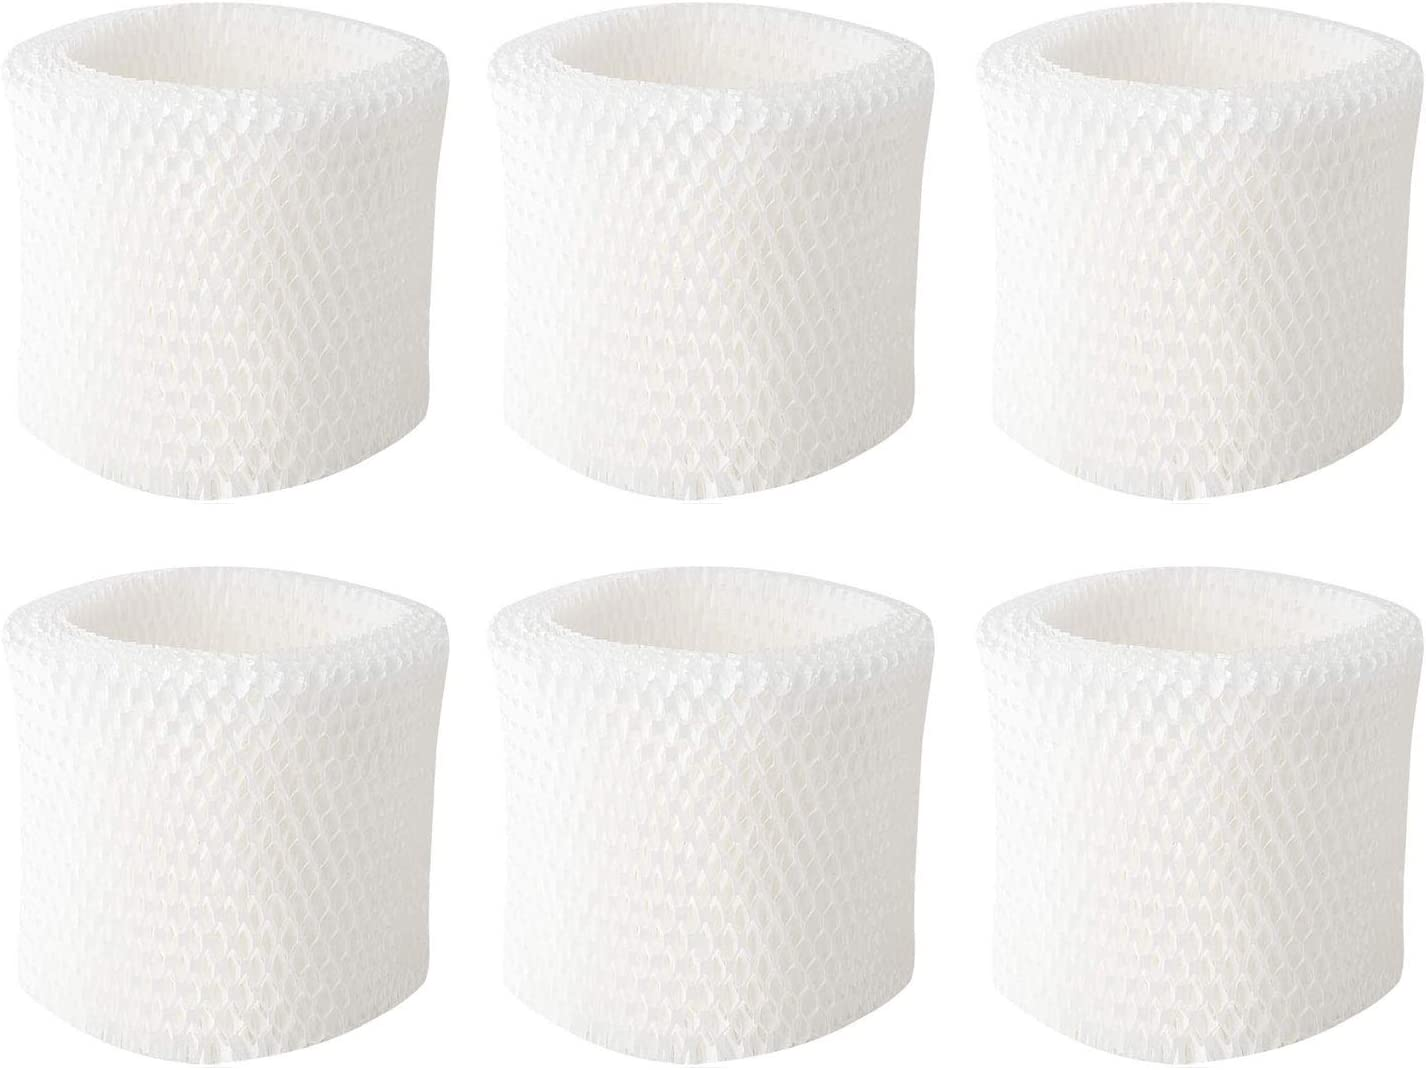 Colorfullife 6 Pack Humidifier Wicking Filters for Honeywell Humidifier Replacement Filter HAC-504AW, HAC504V1,HAC-504 Filter A